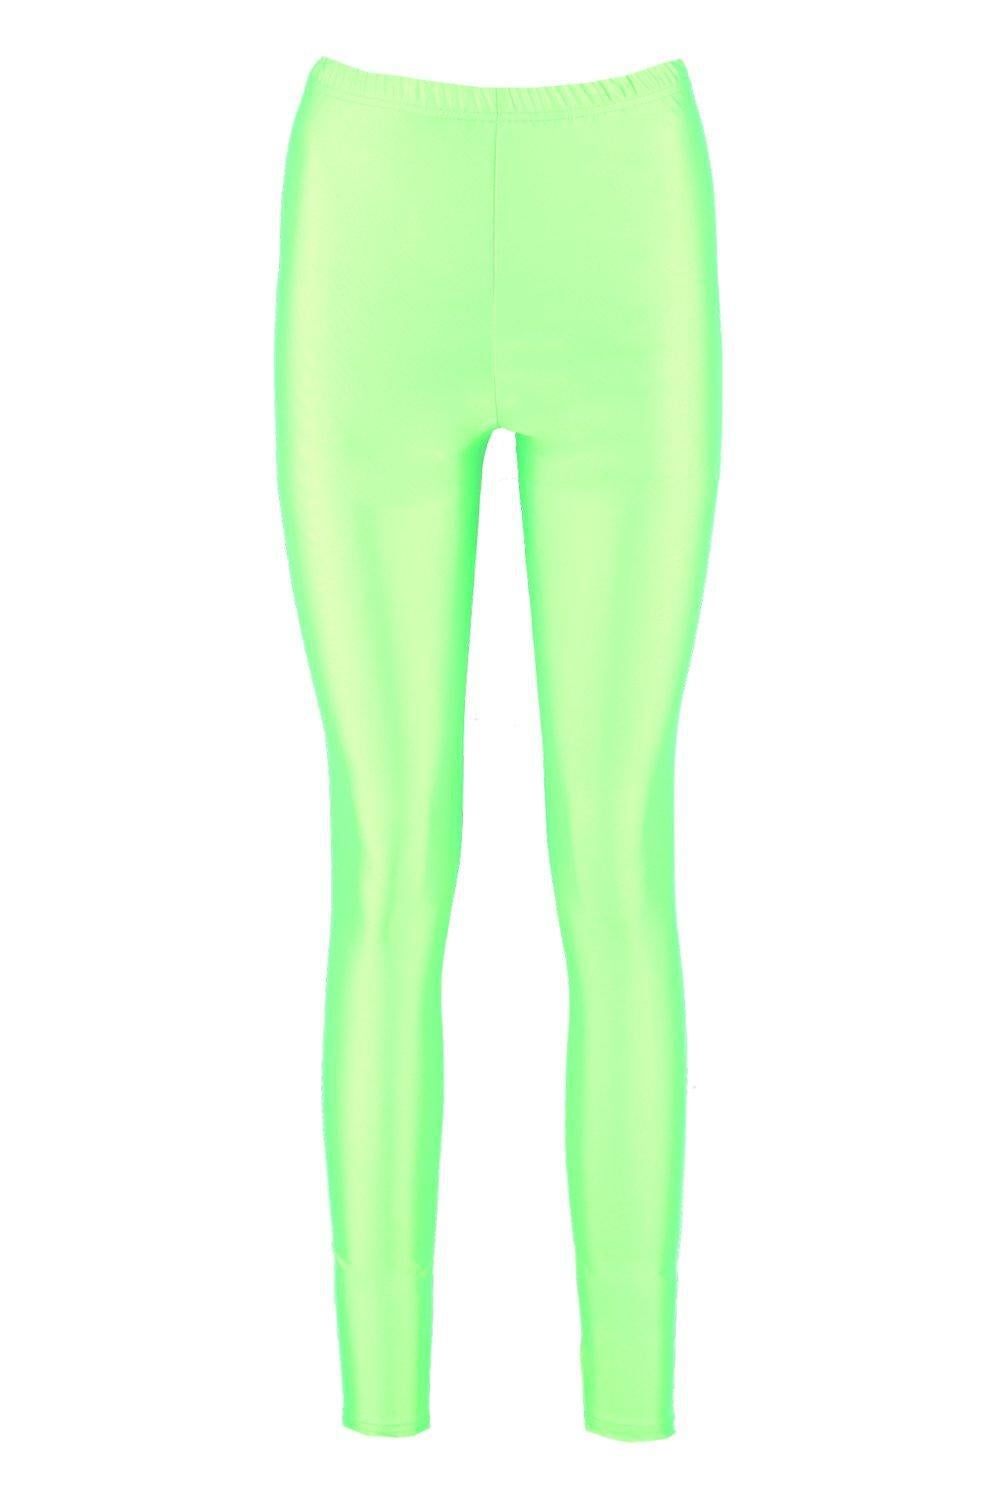 Image of Slime Leggings